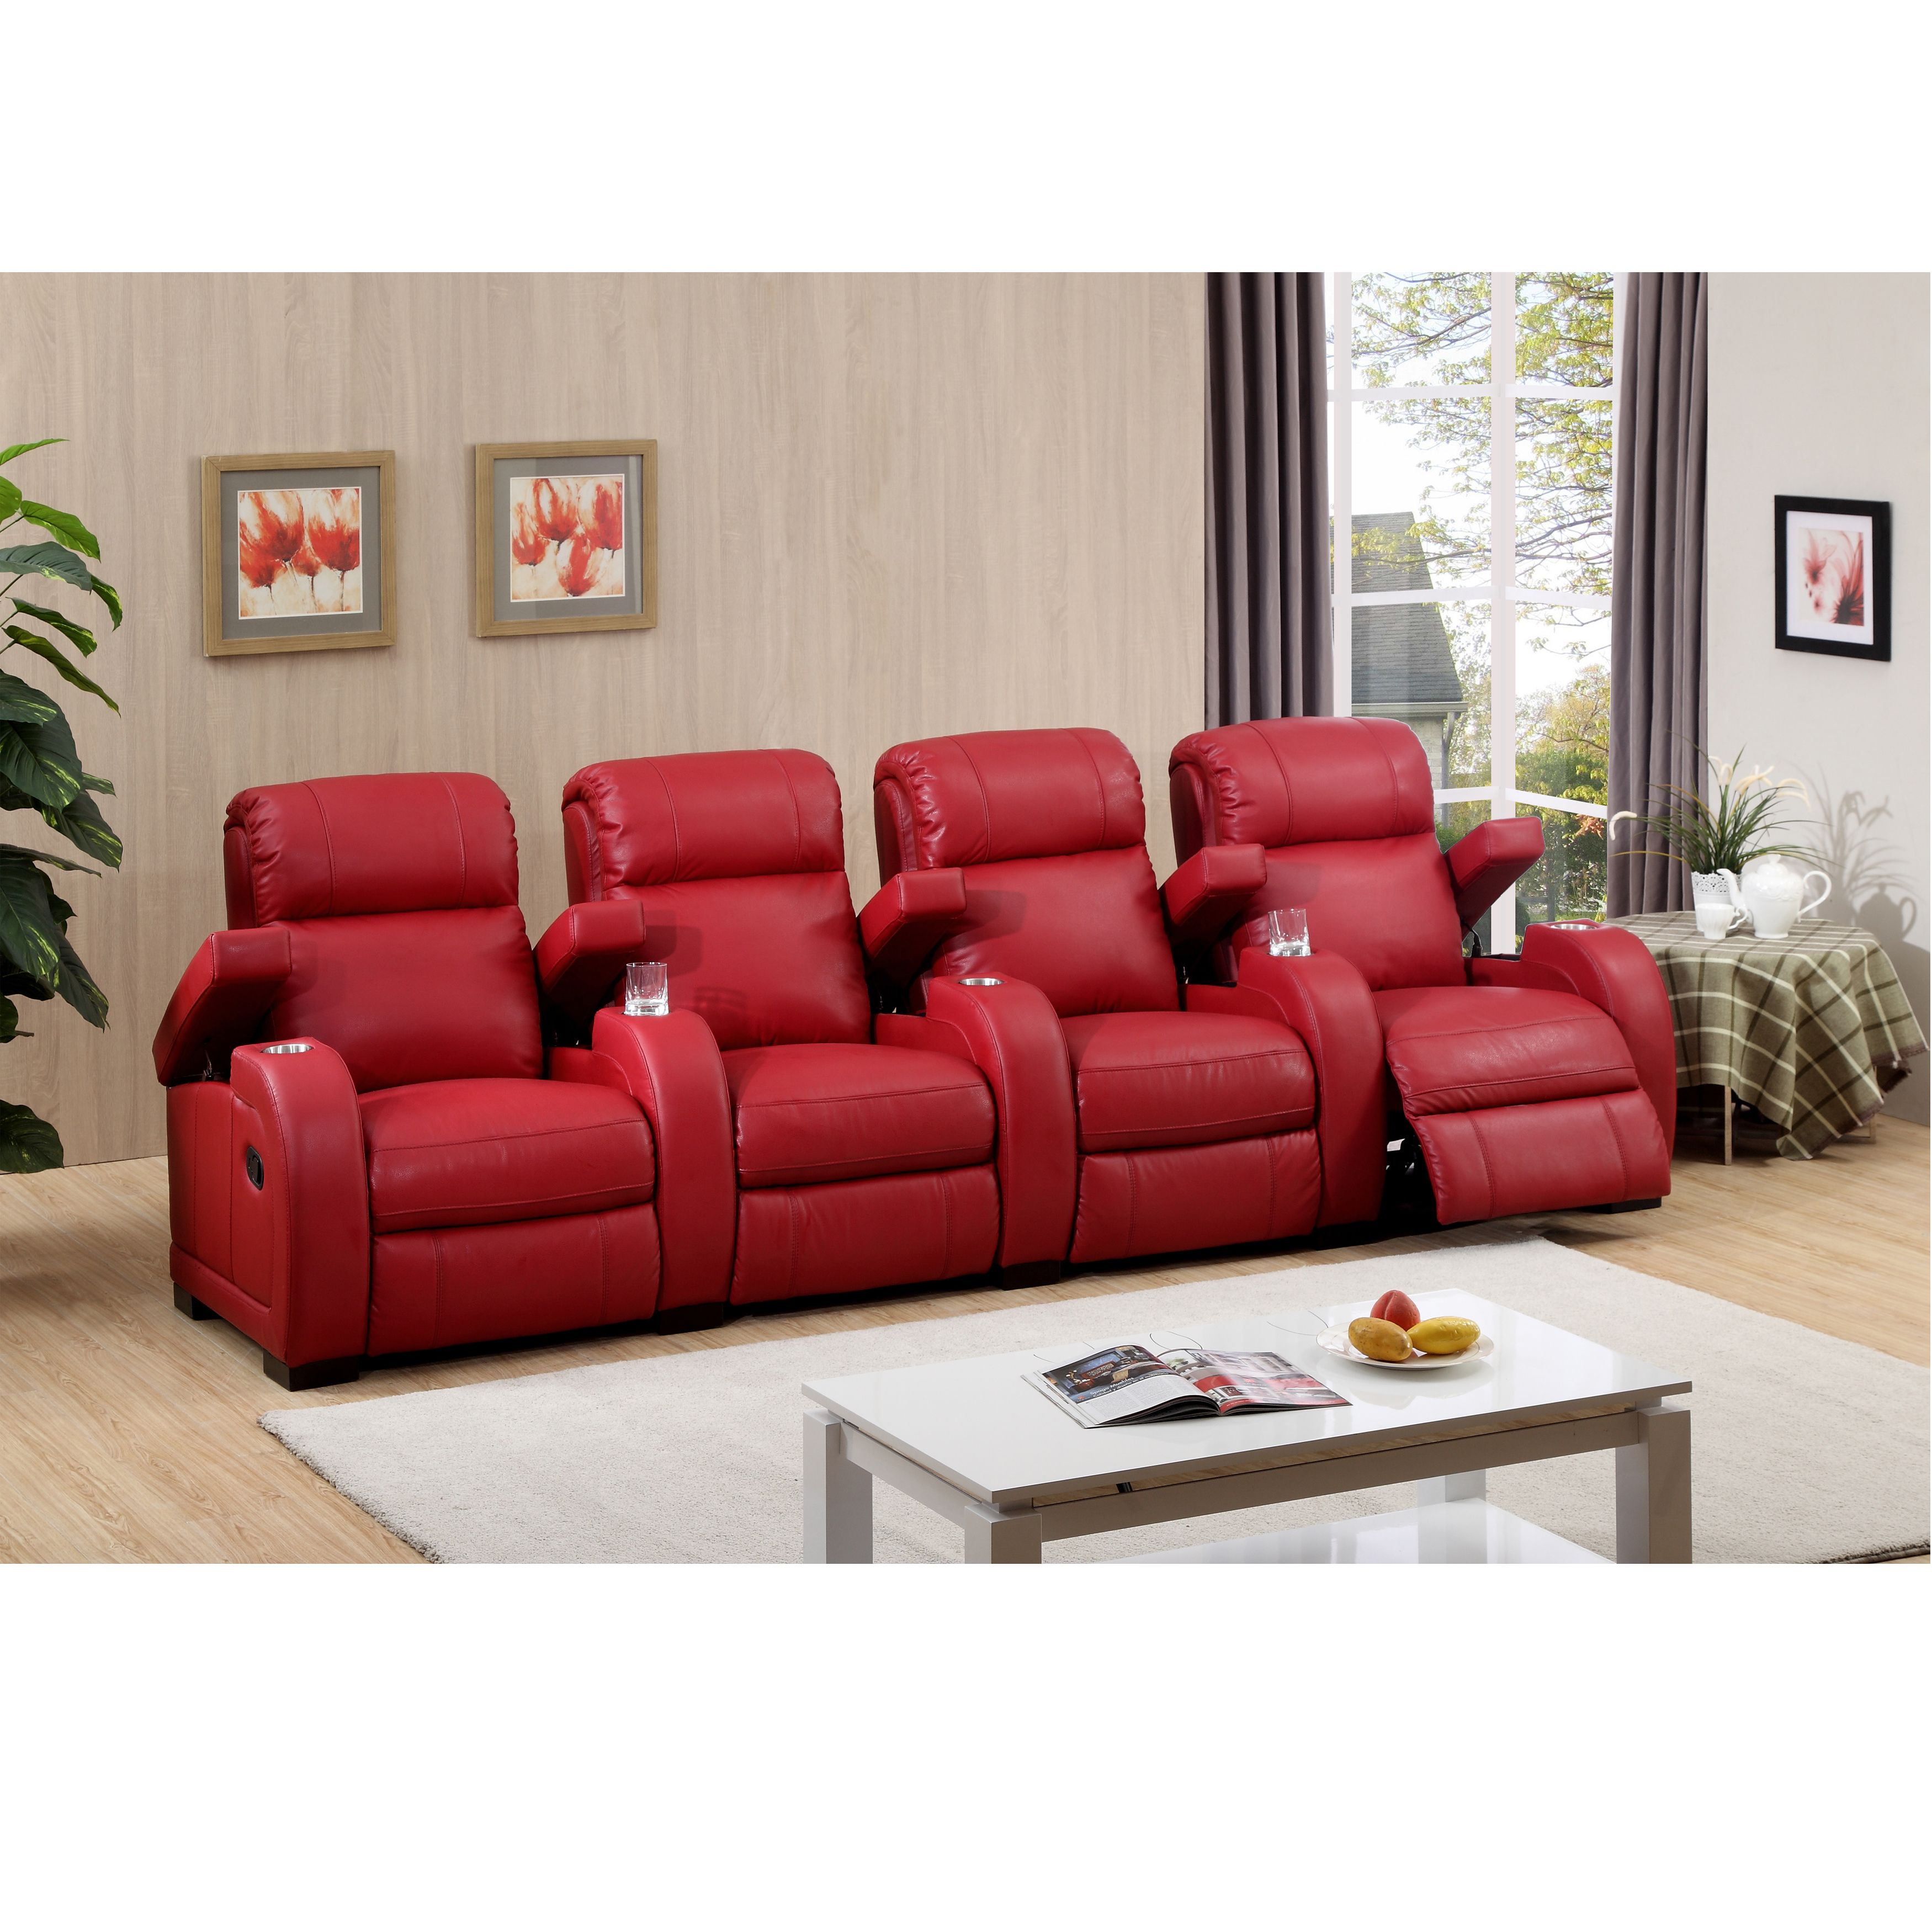 Hugo Four Seat Red Top Grain Leather Recliner Home Theater